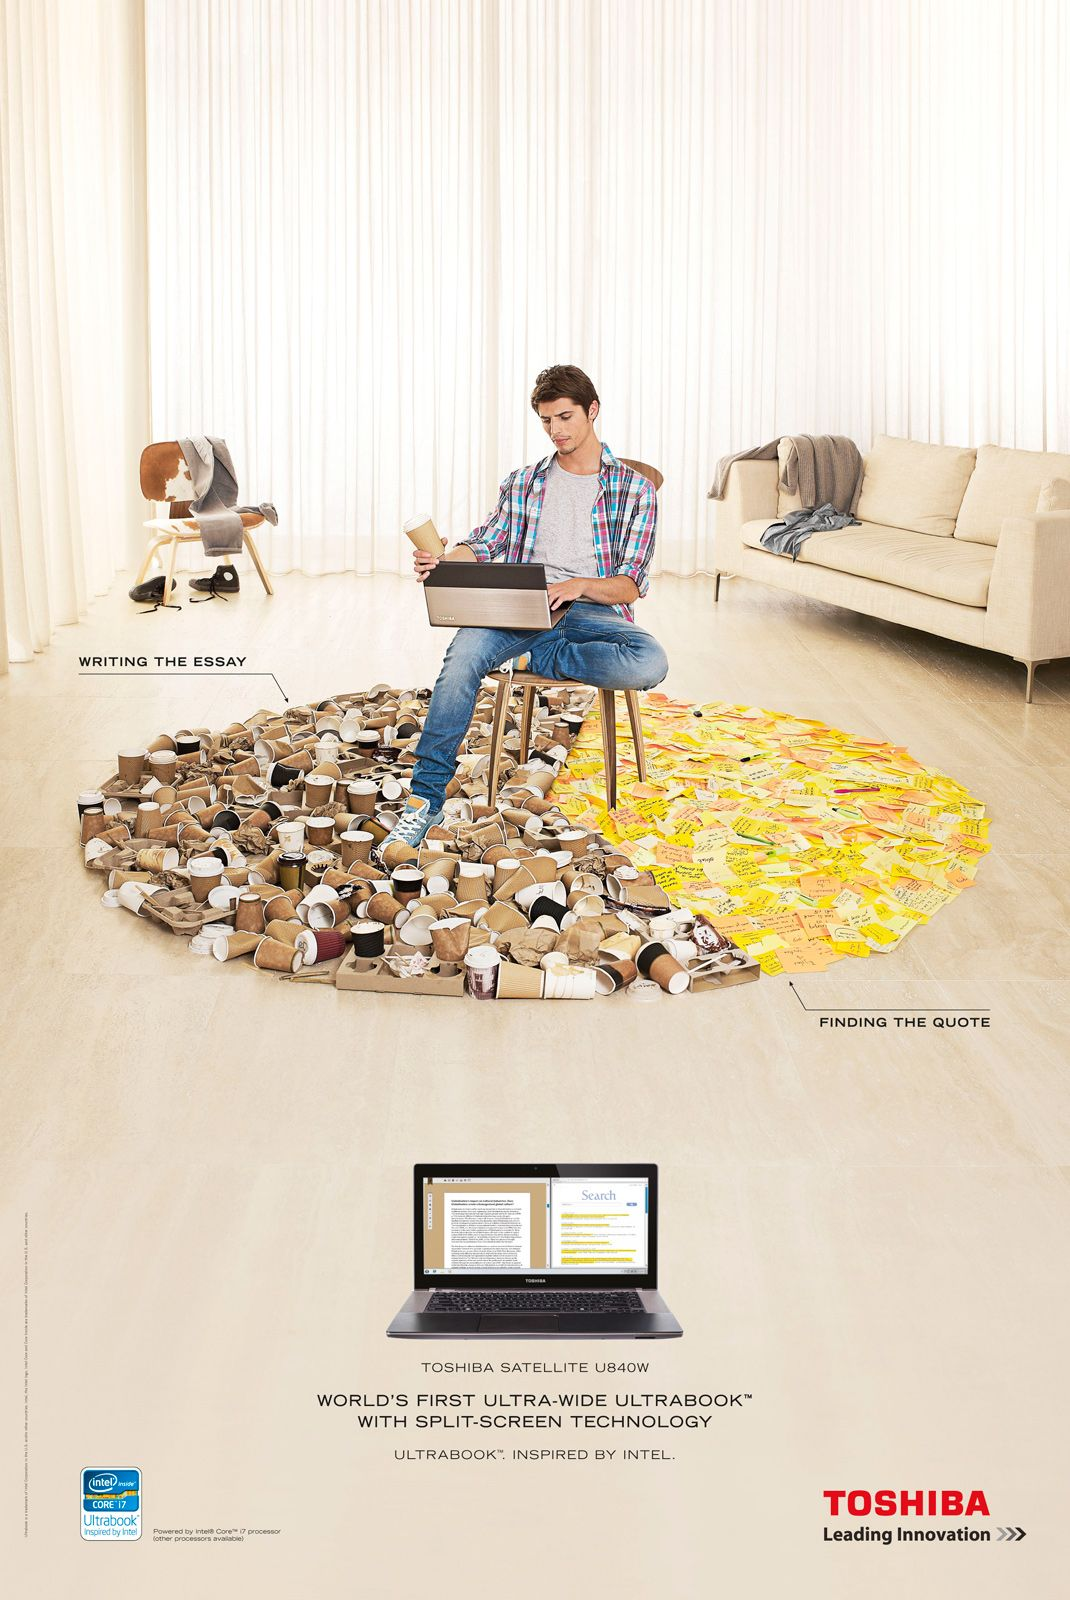 toshiba studying ads of the world ads studying world s first ultra wide ultrabook split screen technology advertising agency clemenger bbdo sydney executive creative director